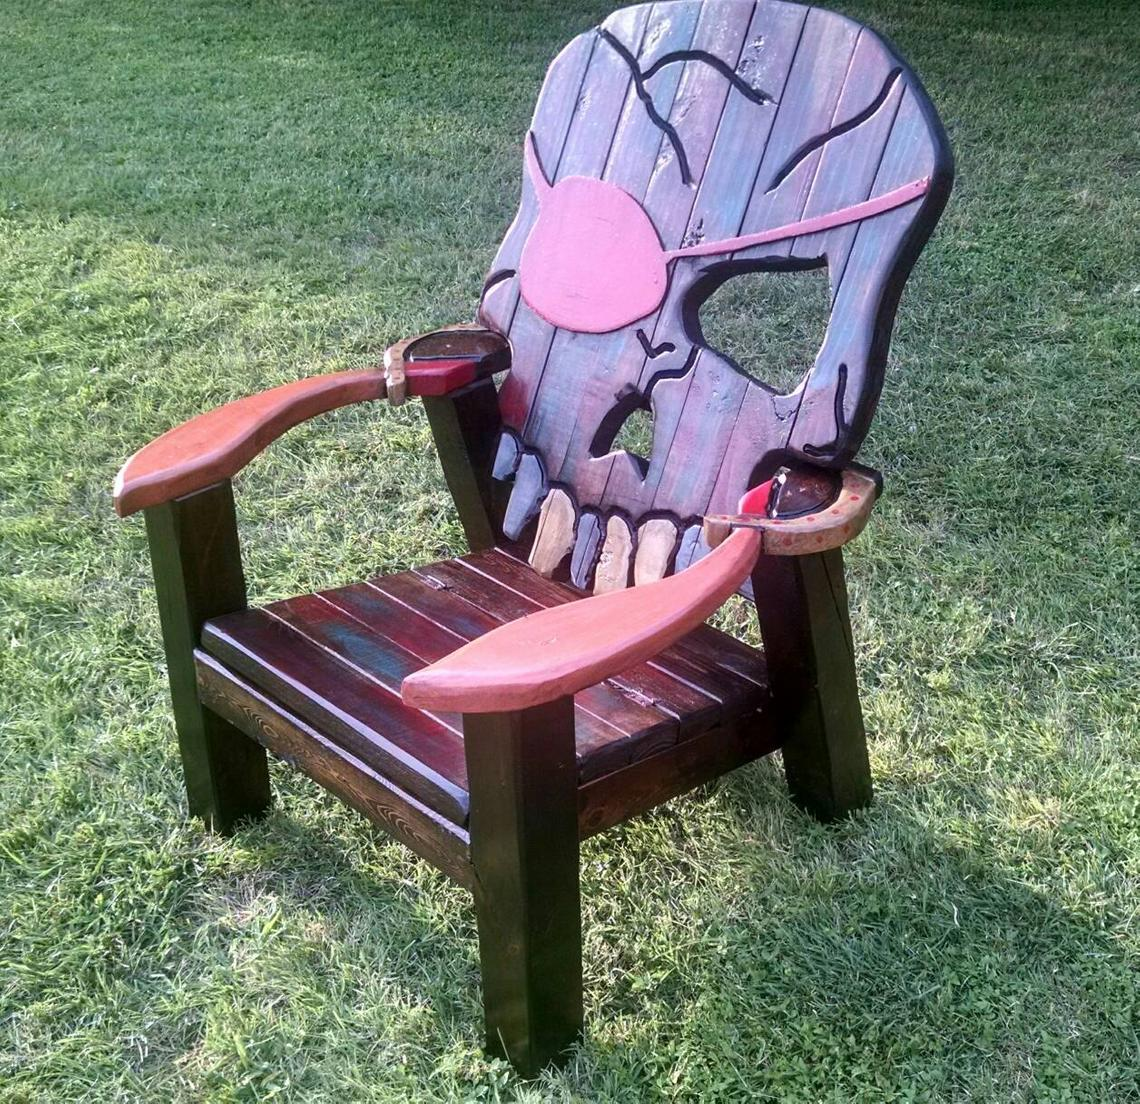 Awesome skull chair